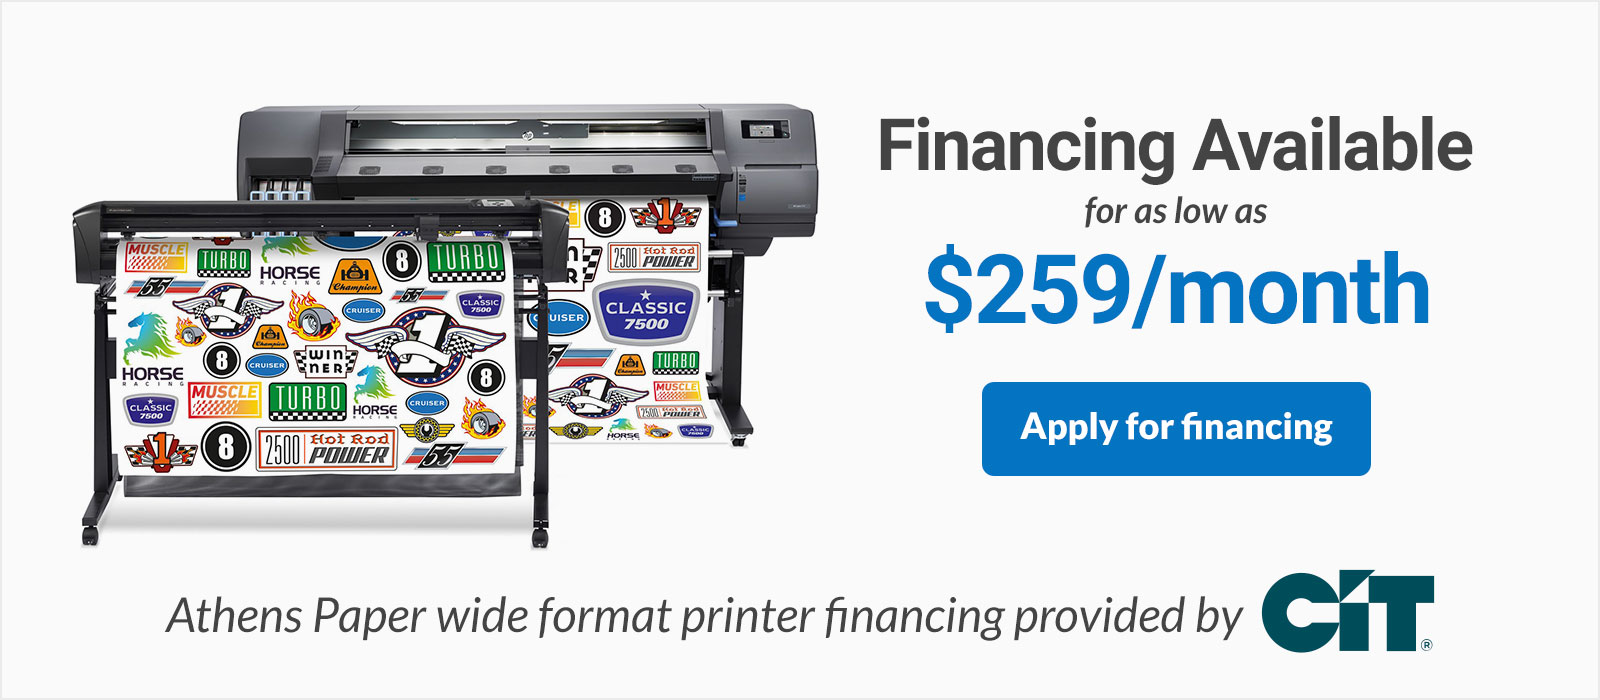 HP Latex 115 Print and Cut Financing HP 115 Printer and Cutter Bundle on sale discounted low monthly payments